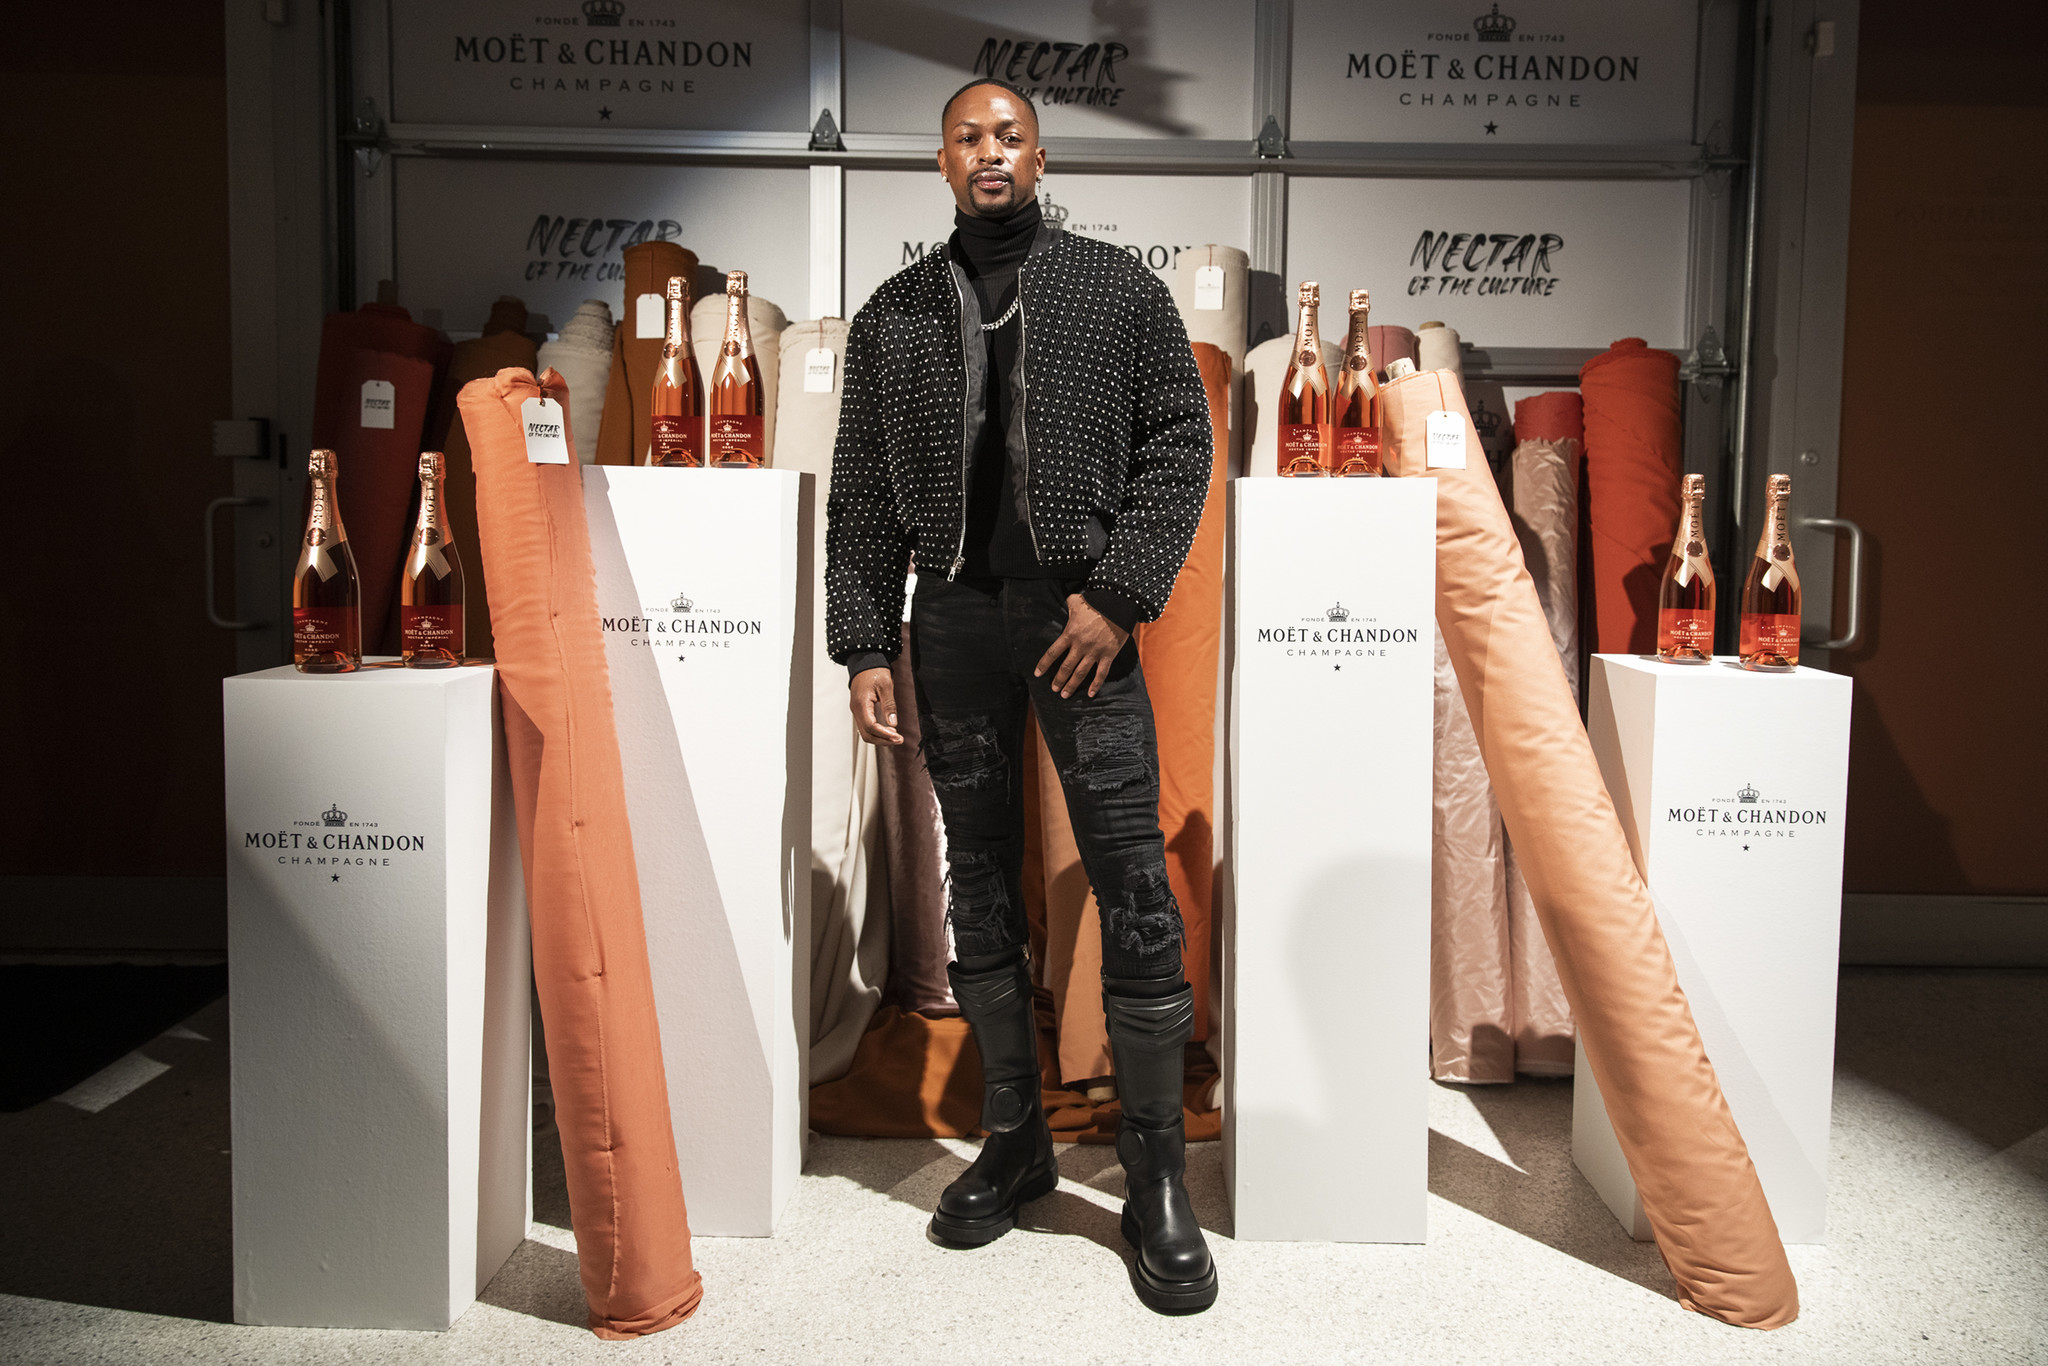 Queens-born designer LaQuan Smith discusses dressing Beyoncé and Rihanna with Daily News